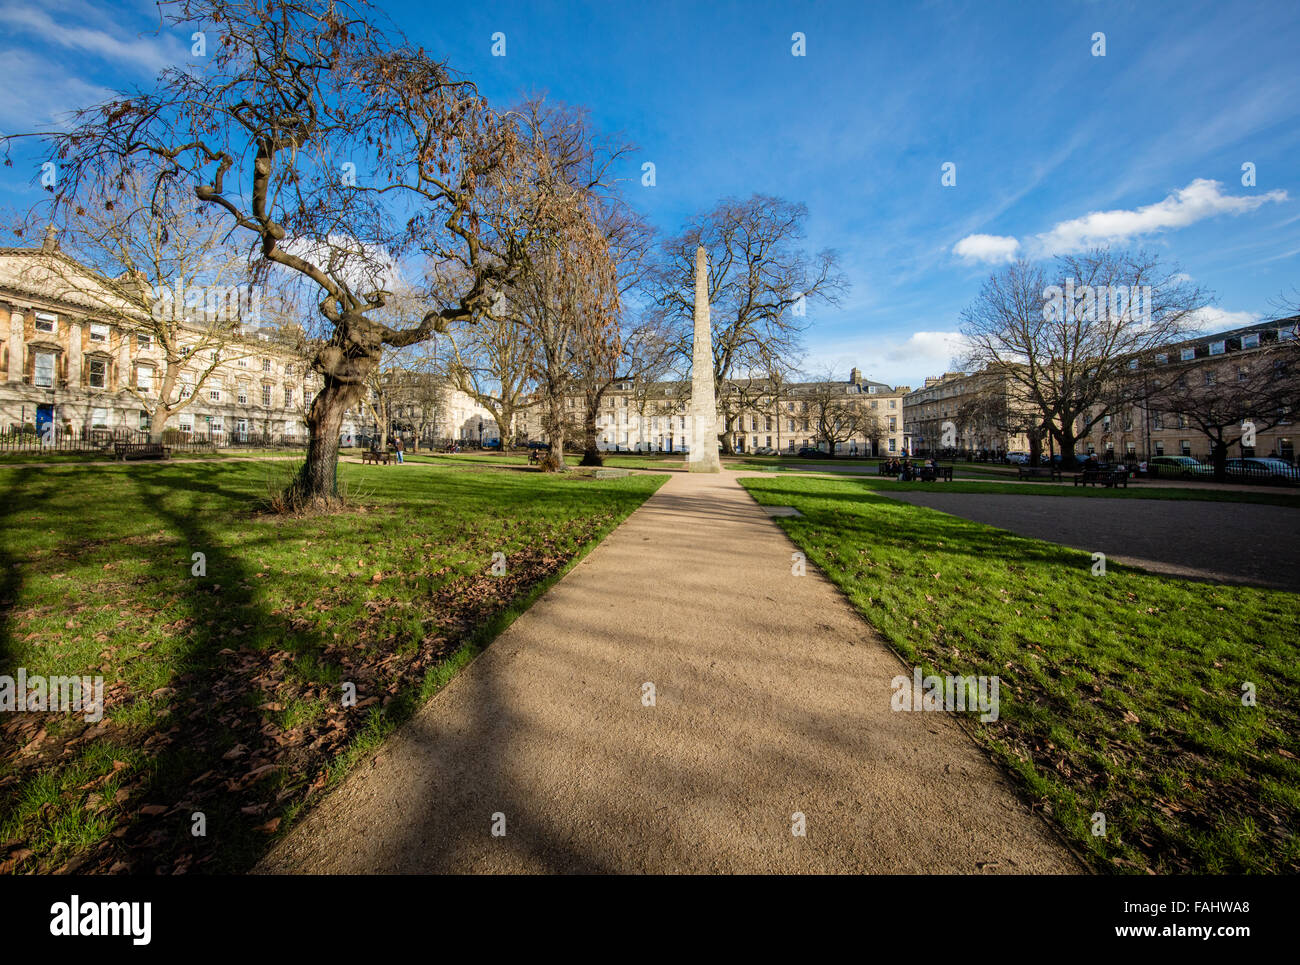 Queen Square in Bath UK with the Beau Nash obelisk forming the centrepiece to this  Georgian square built by architect - Stock Image